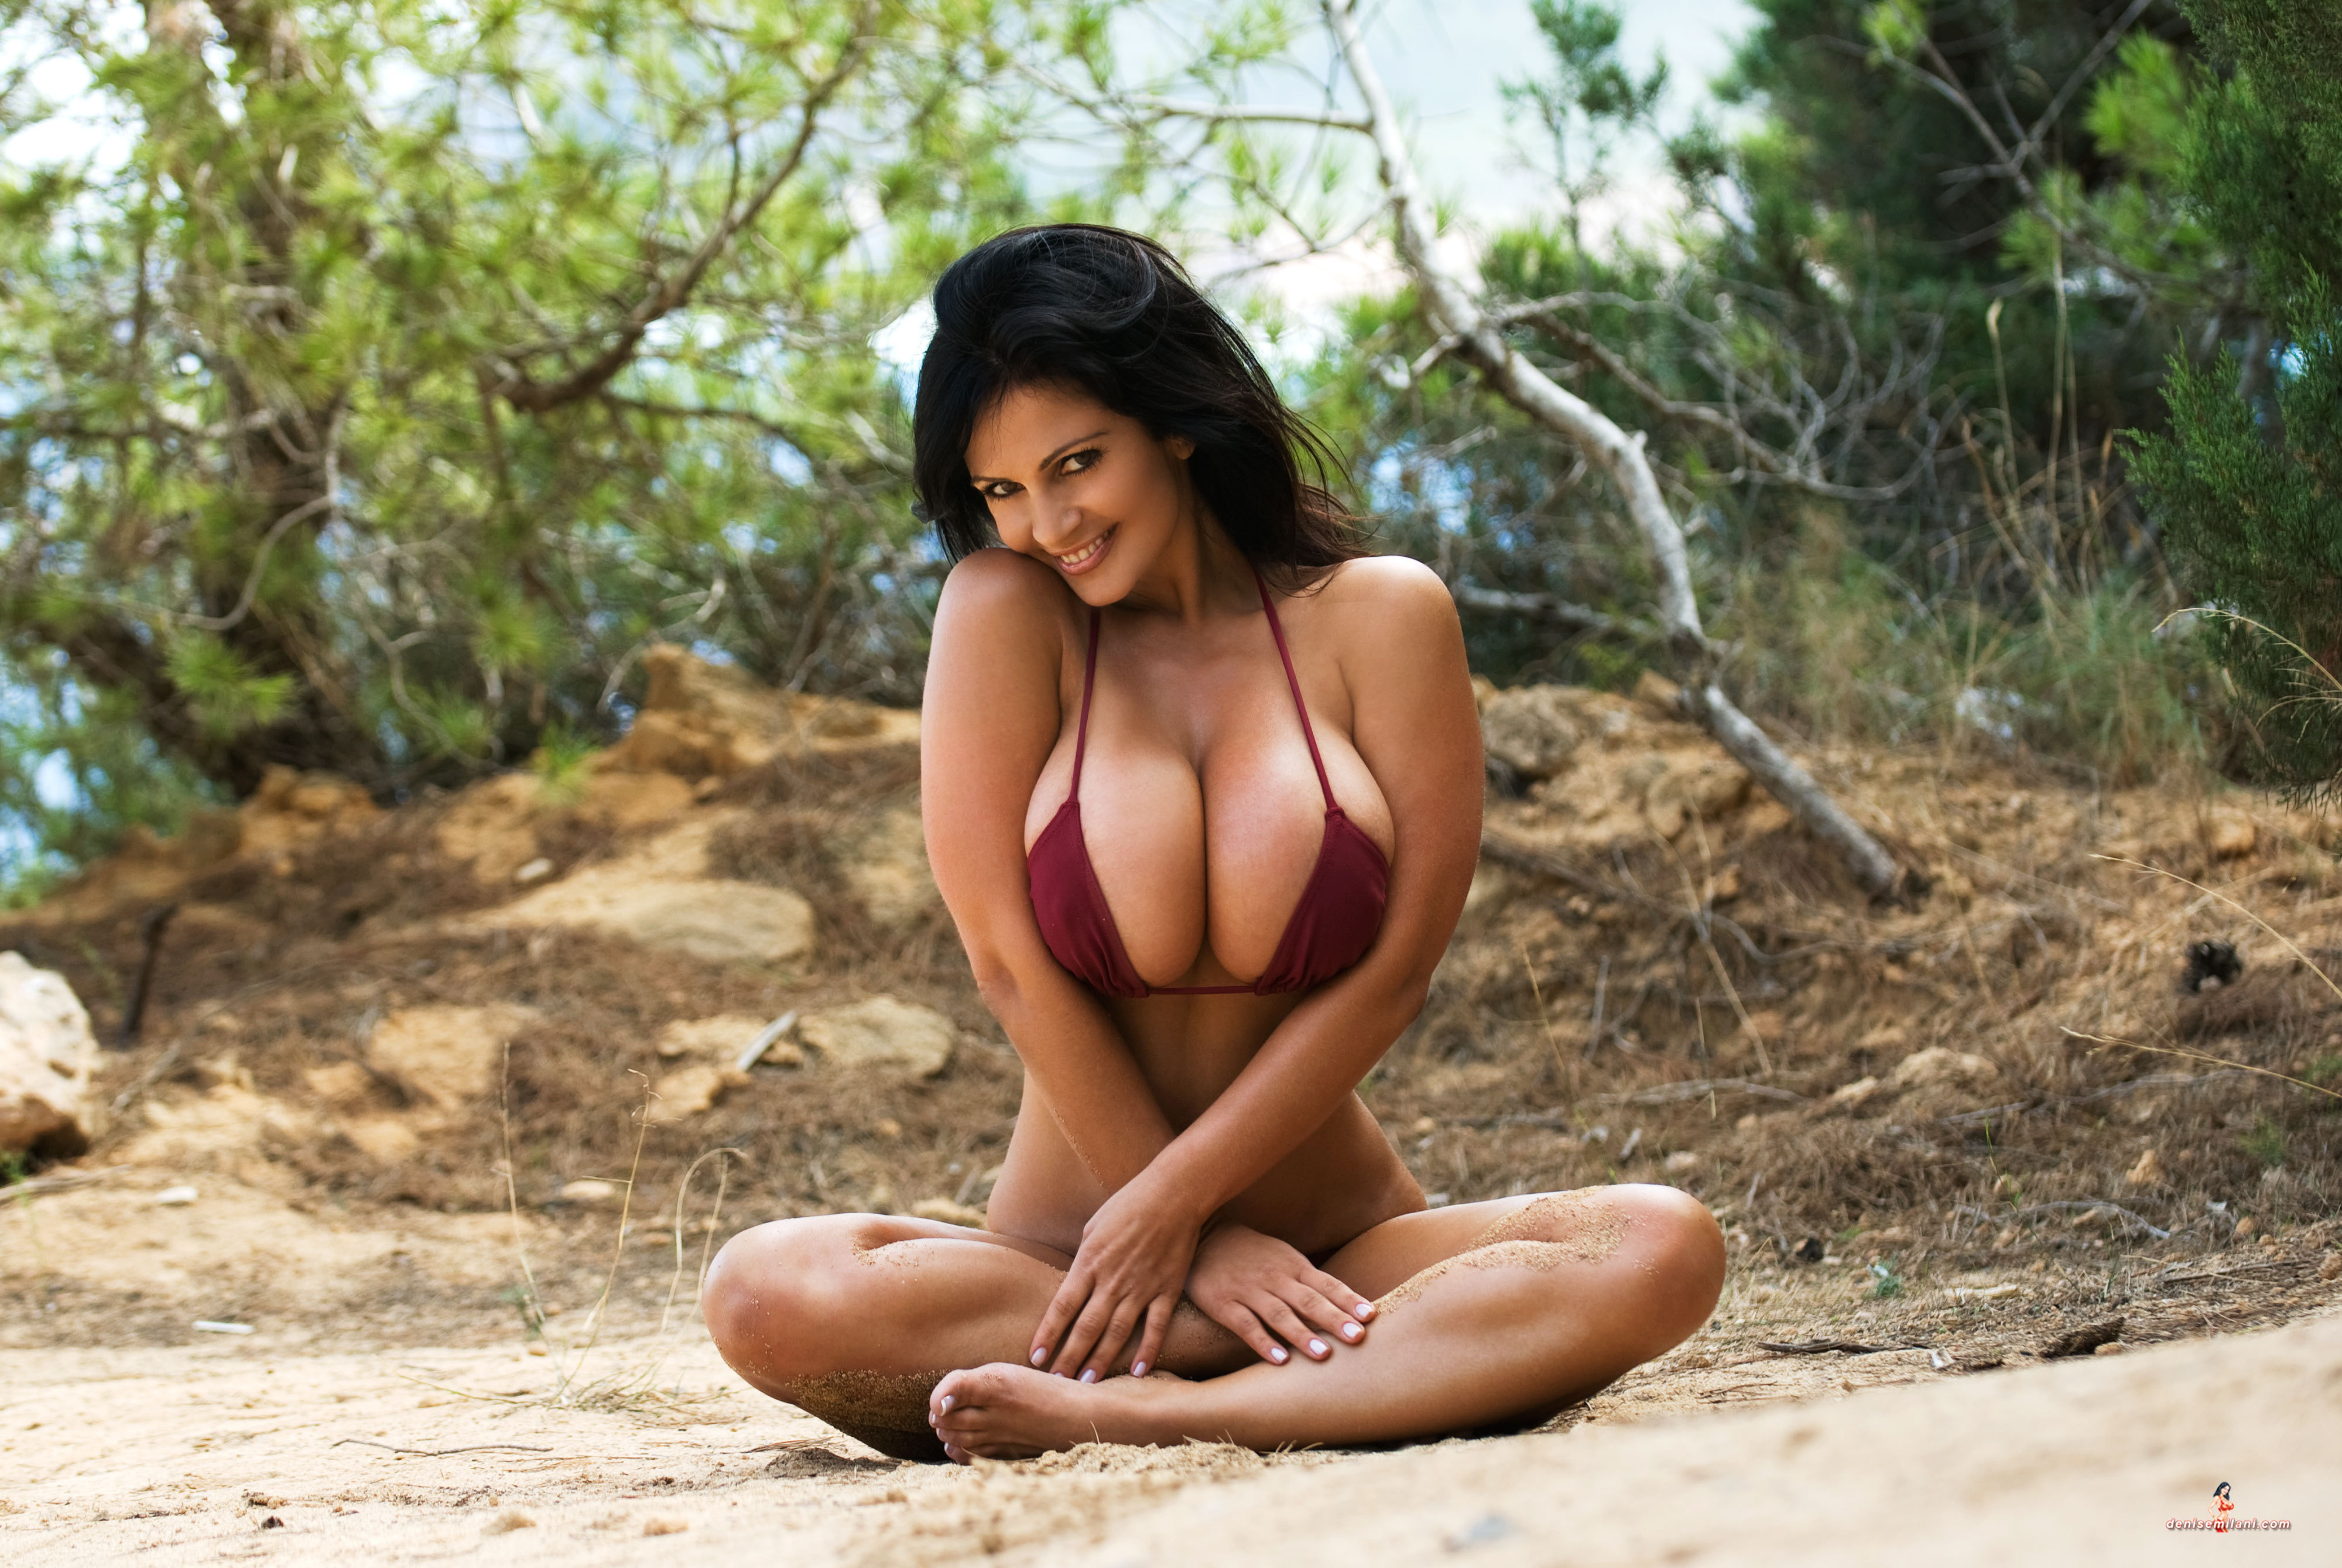 outdoor solo posing of a natural beauty with big boobies  484480